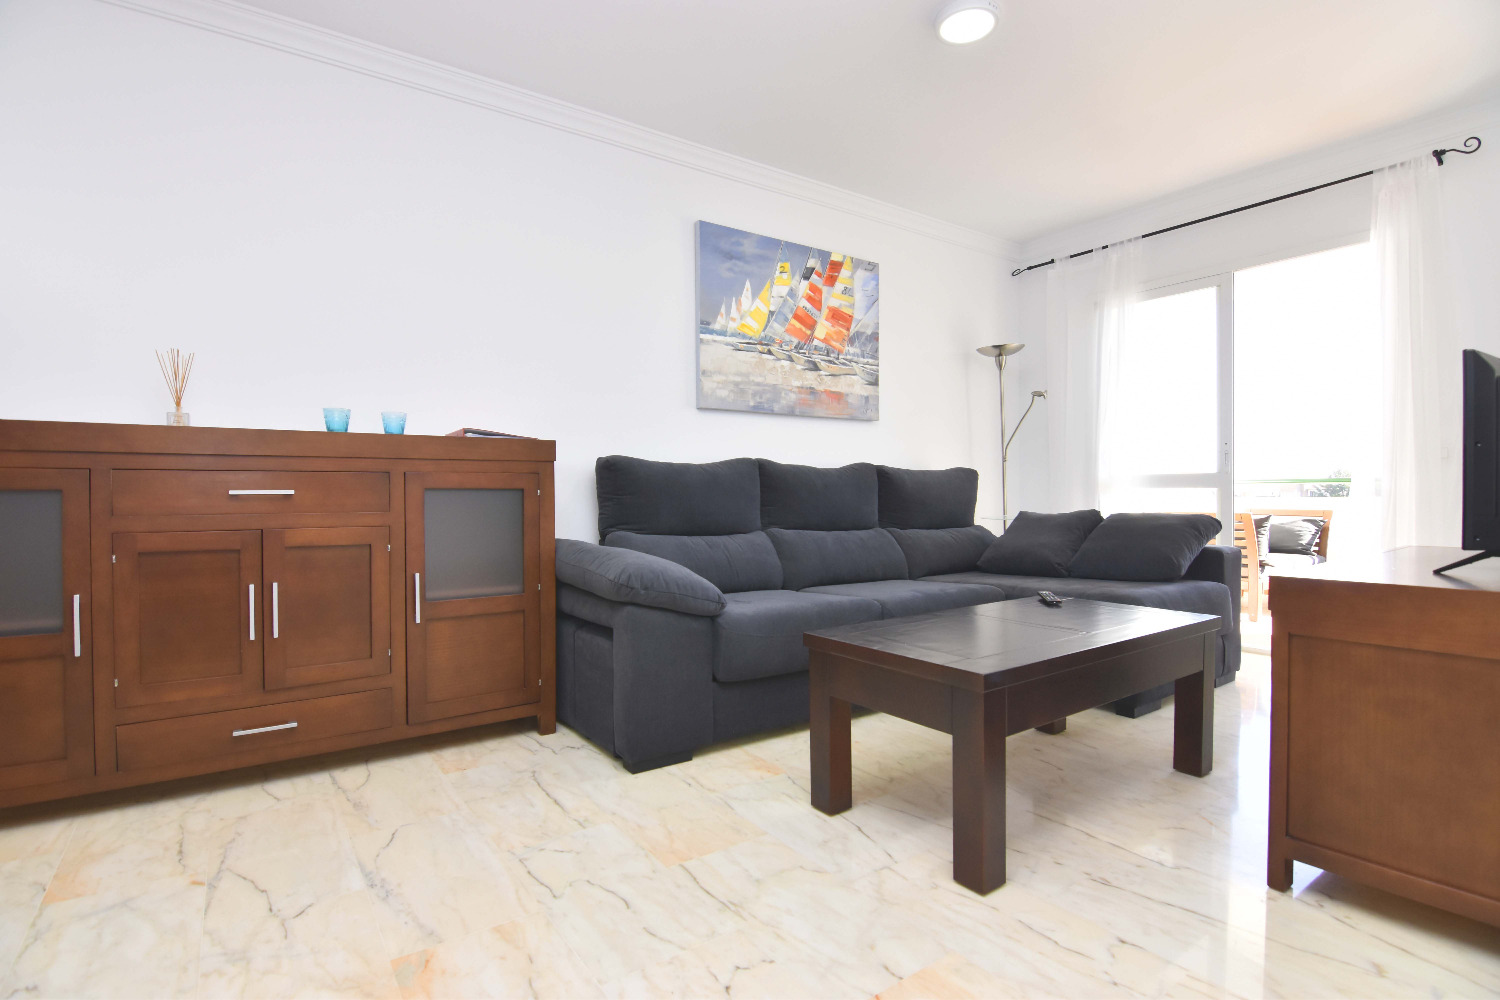 Apartment for sale with 2 bedrooms with sea views